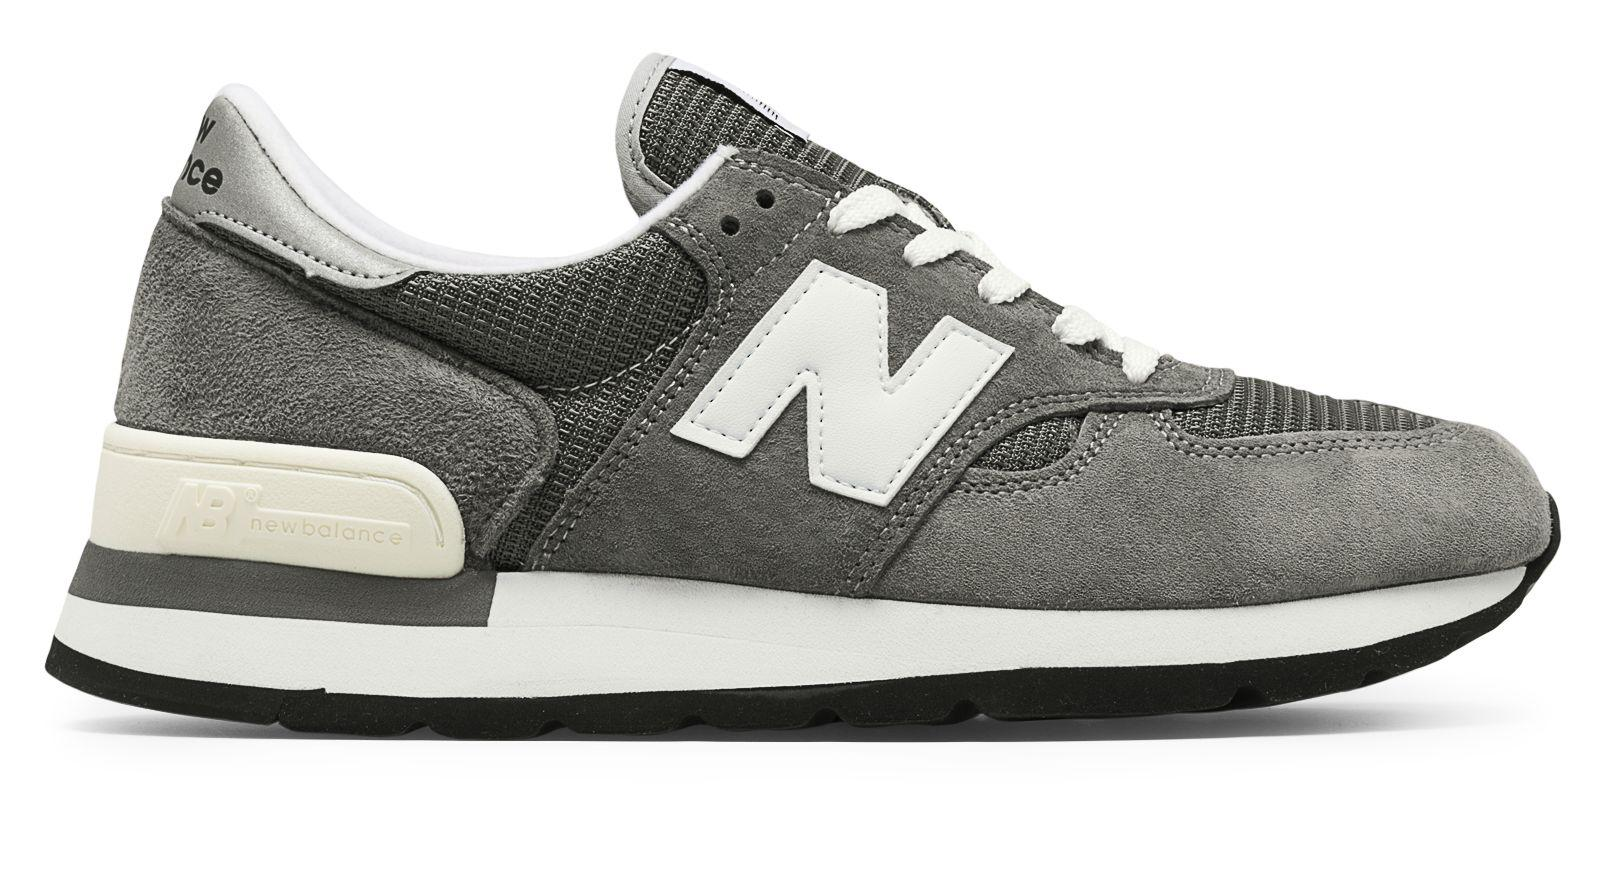 New Balance. Men's Gray 990 Made In The Usa Bringback